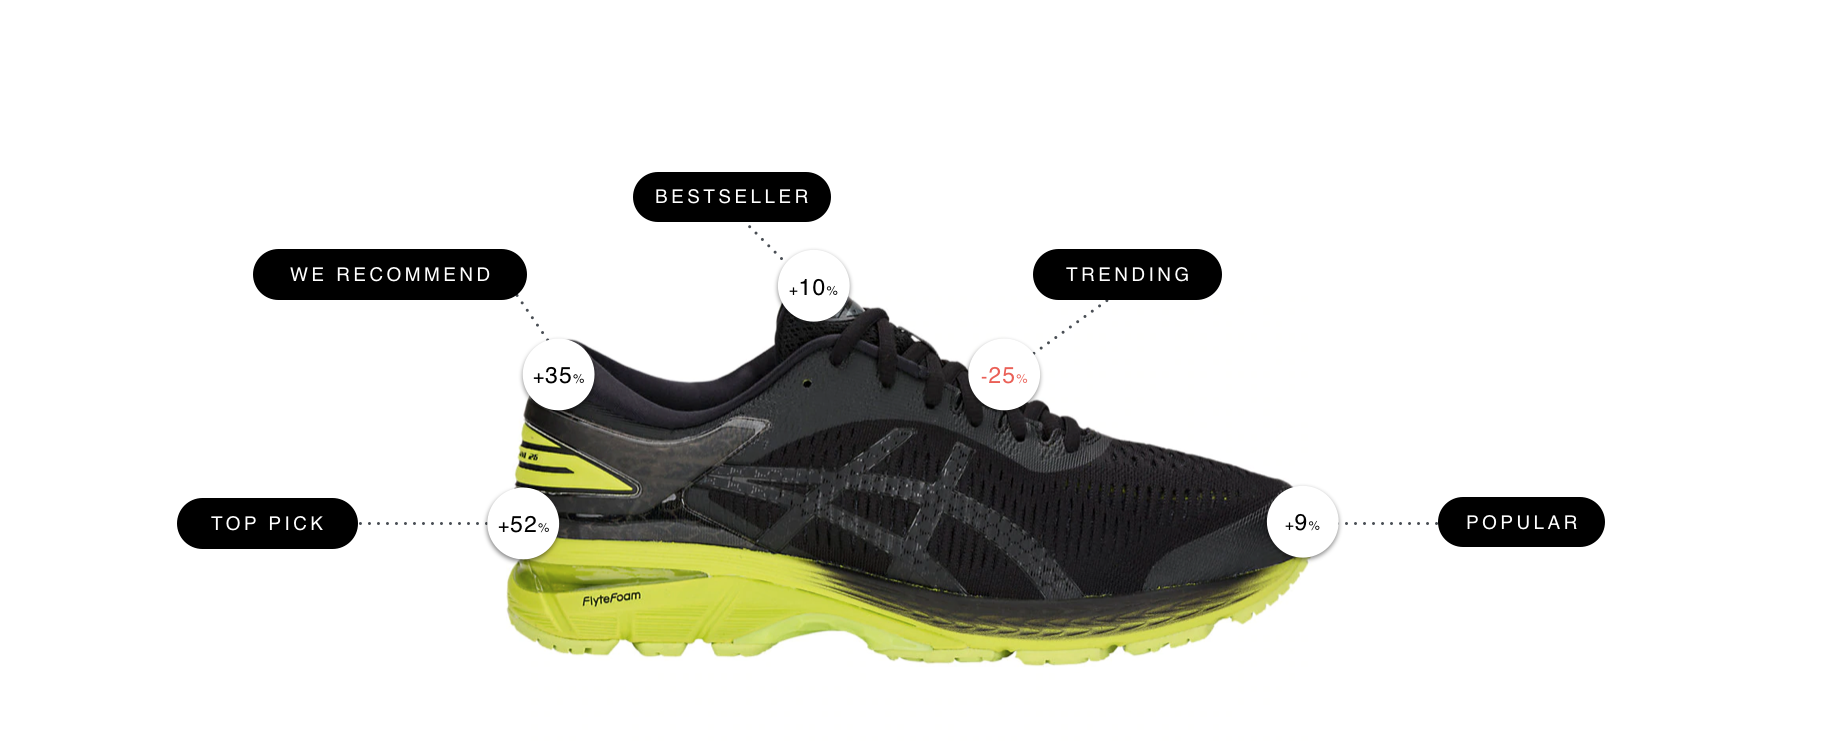 asics case study - best and worst performing product messages